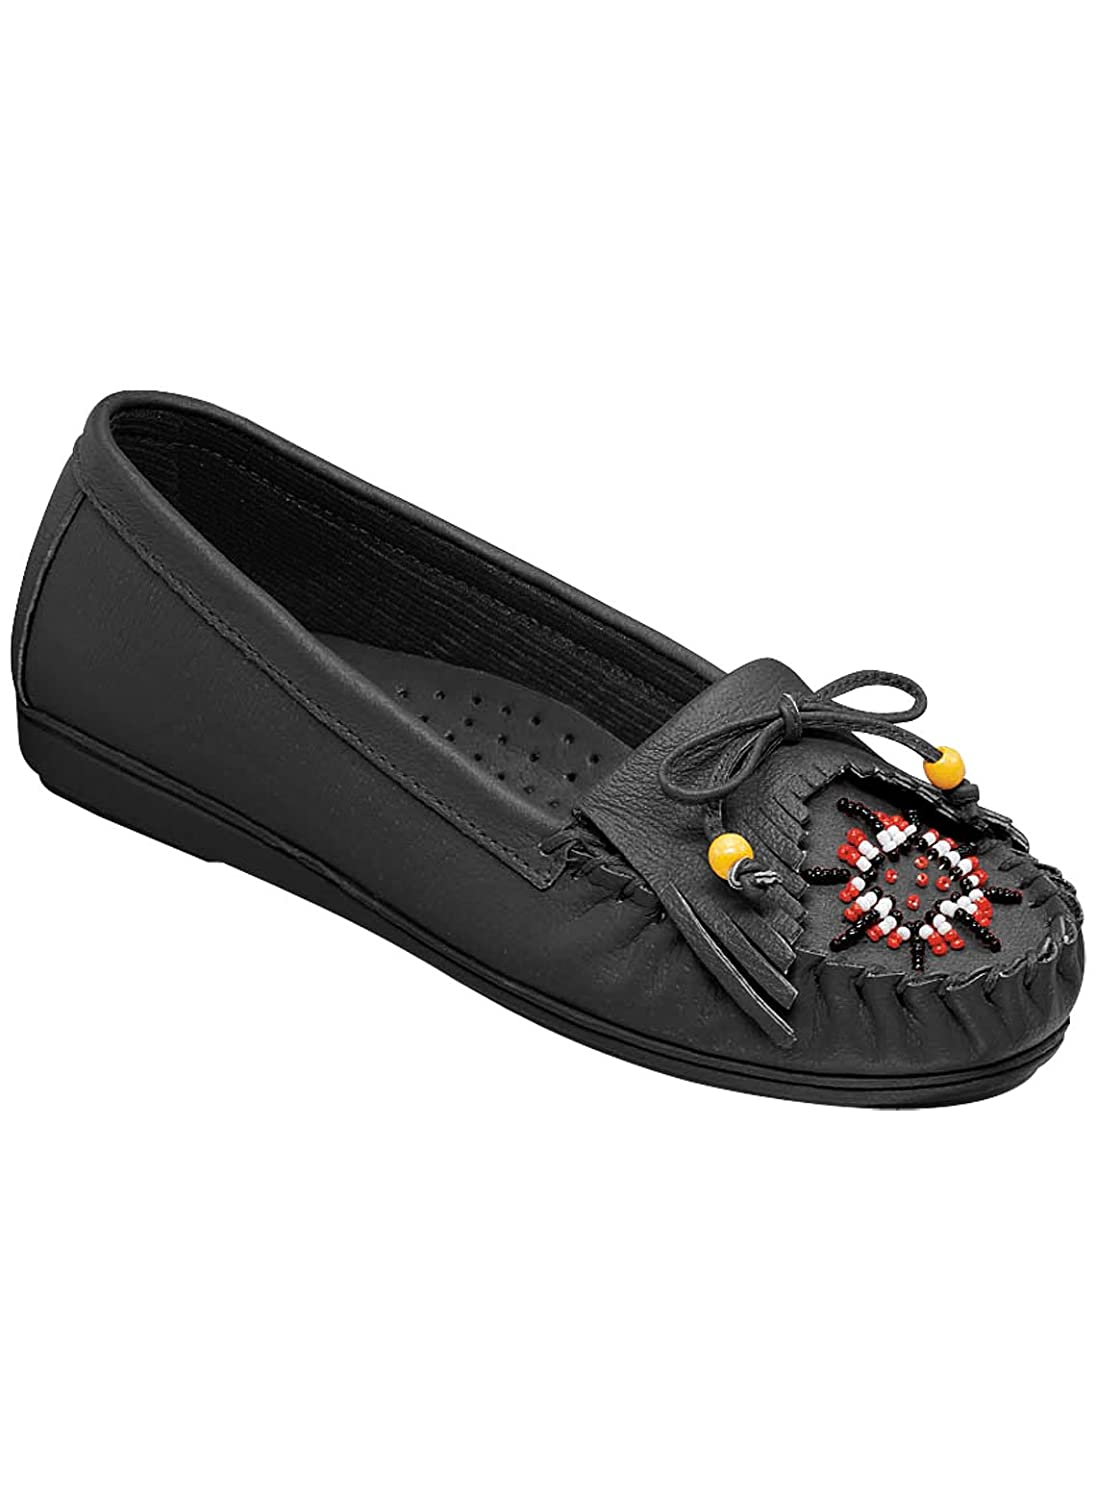 Genuine Leather Beaded Moccasins